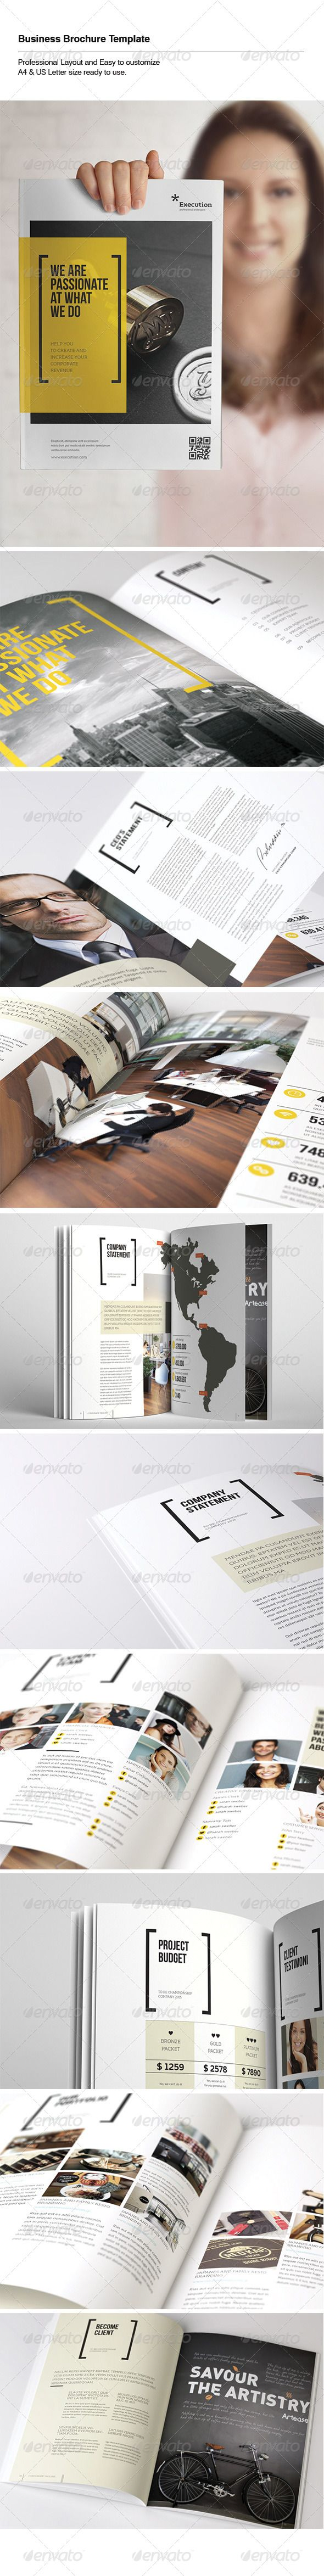 Business Brochure  #bebas nue #blue #brochure • Available here → http://graphicriver.net/item/business-brochure/5575406?s_rank=56&ref=pxcr